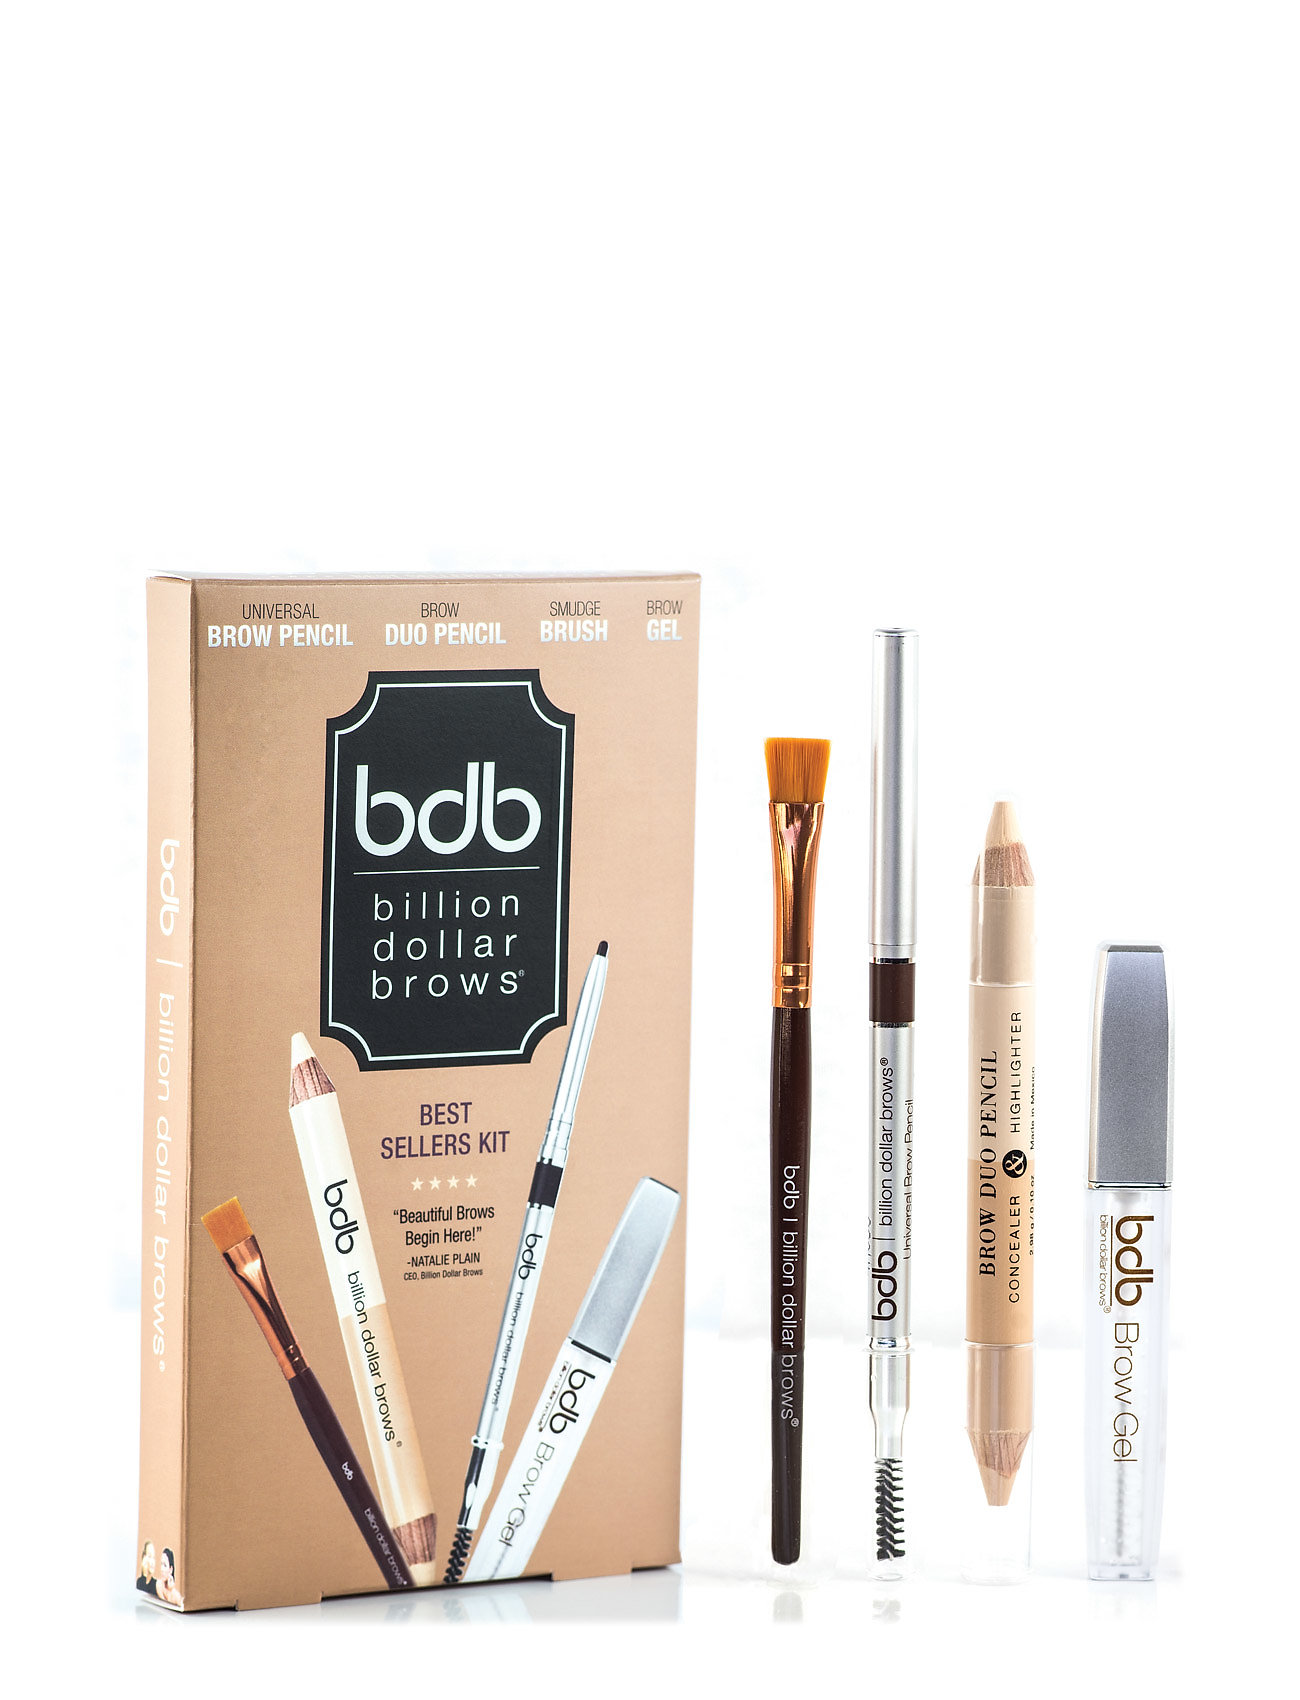 Best sellers kit fra bdb billion dollar brows på boozt.com dk